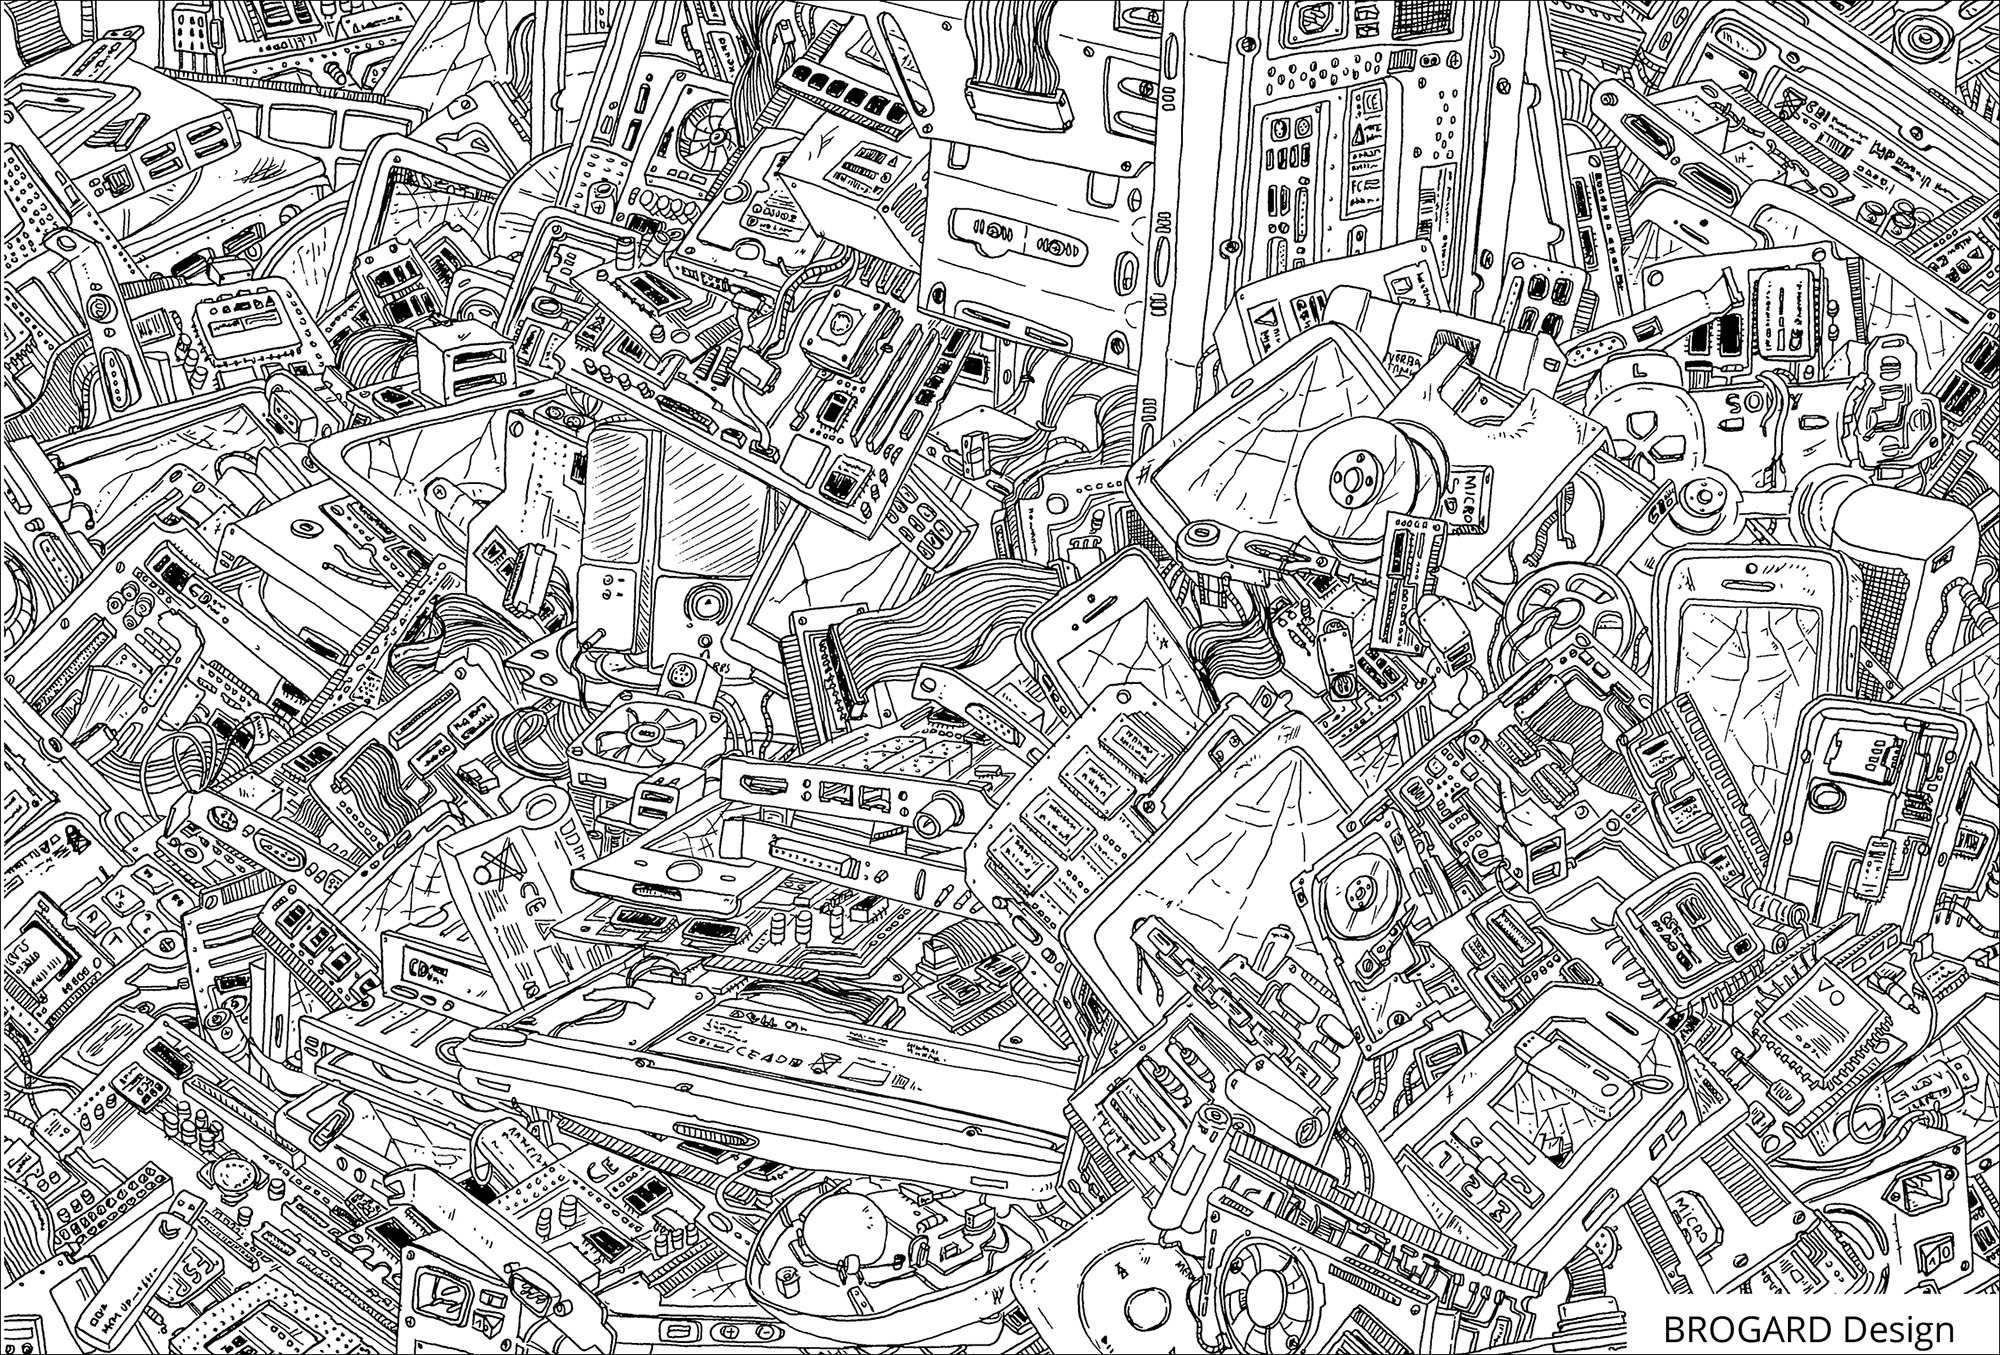 A lot of details to color in this drawing full of electronic elements from computers